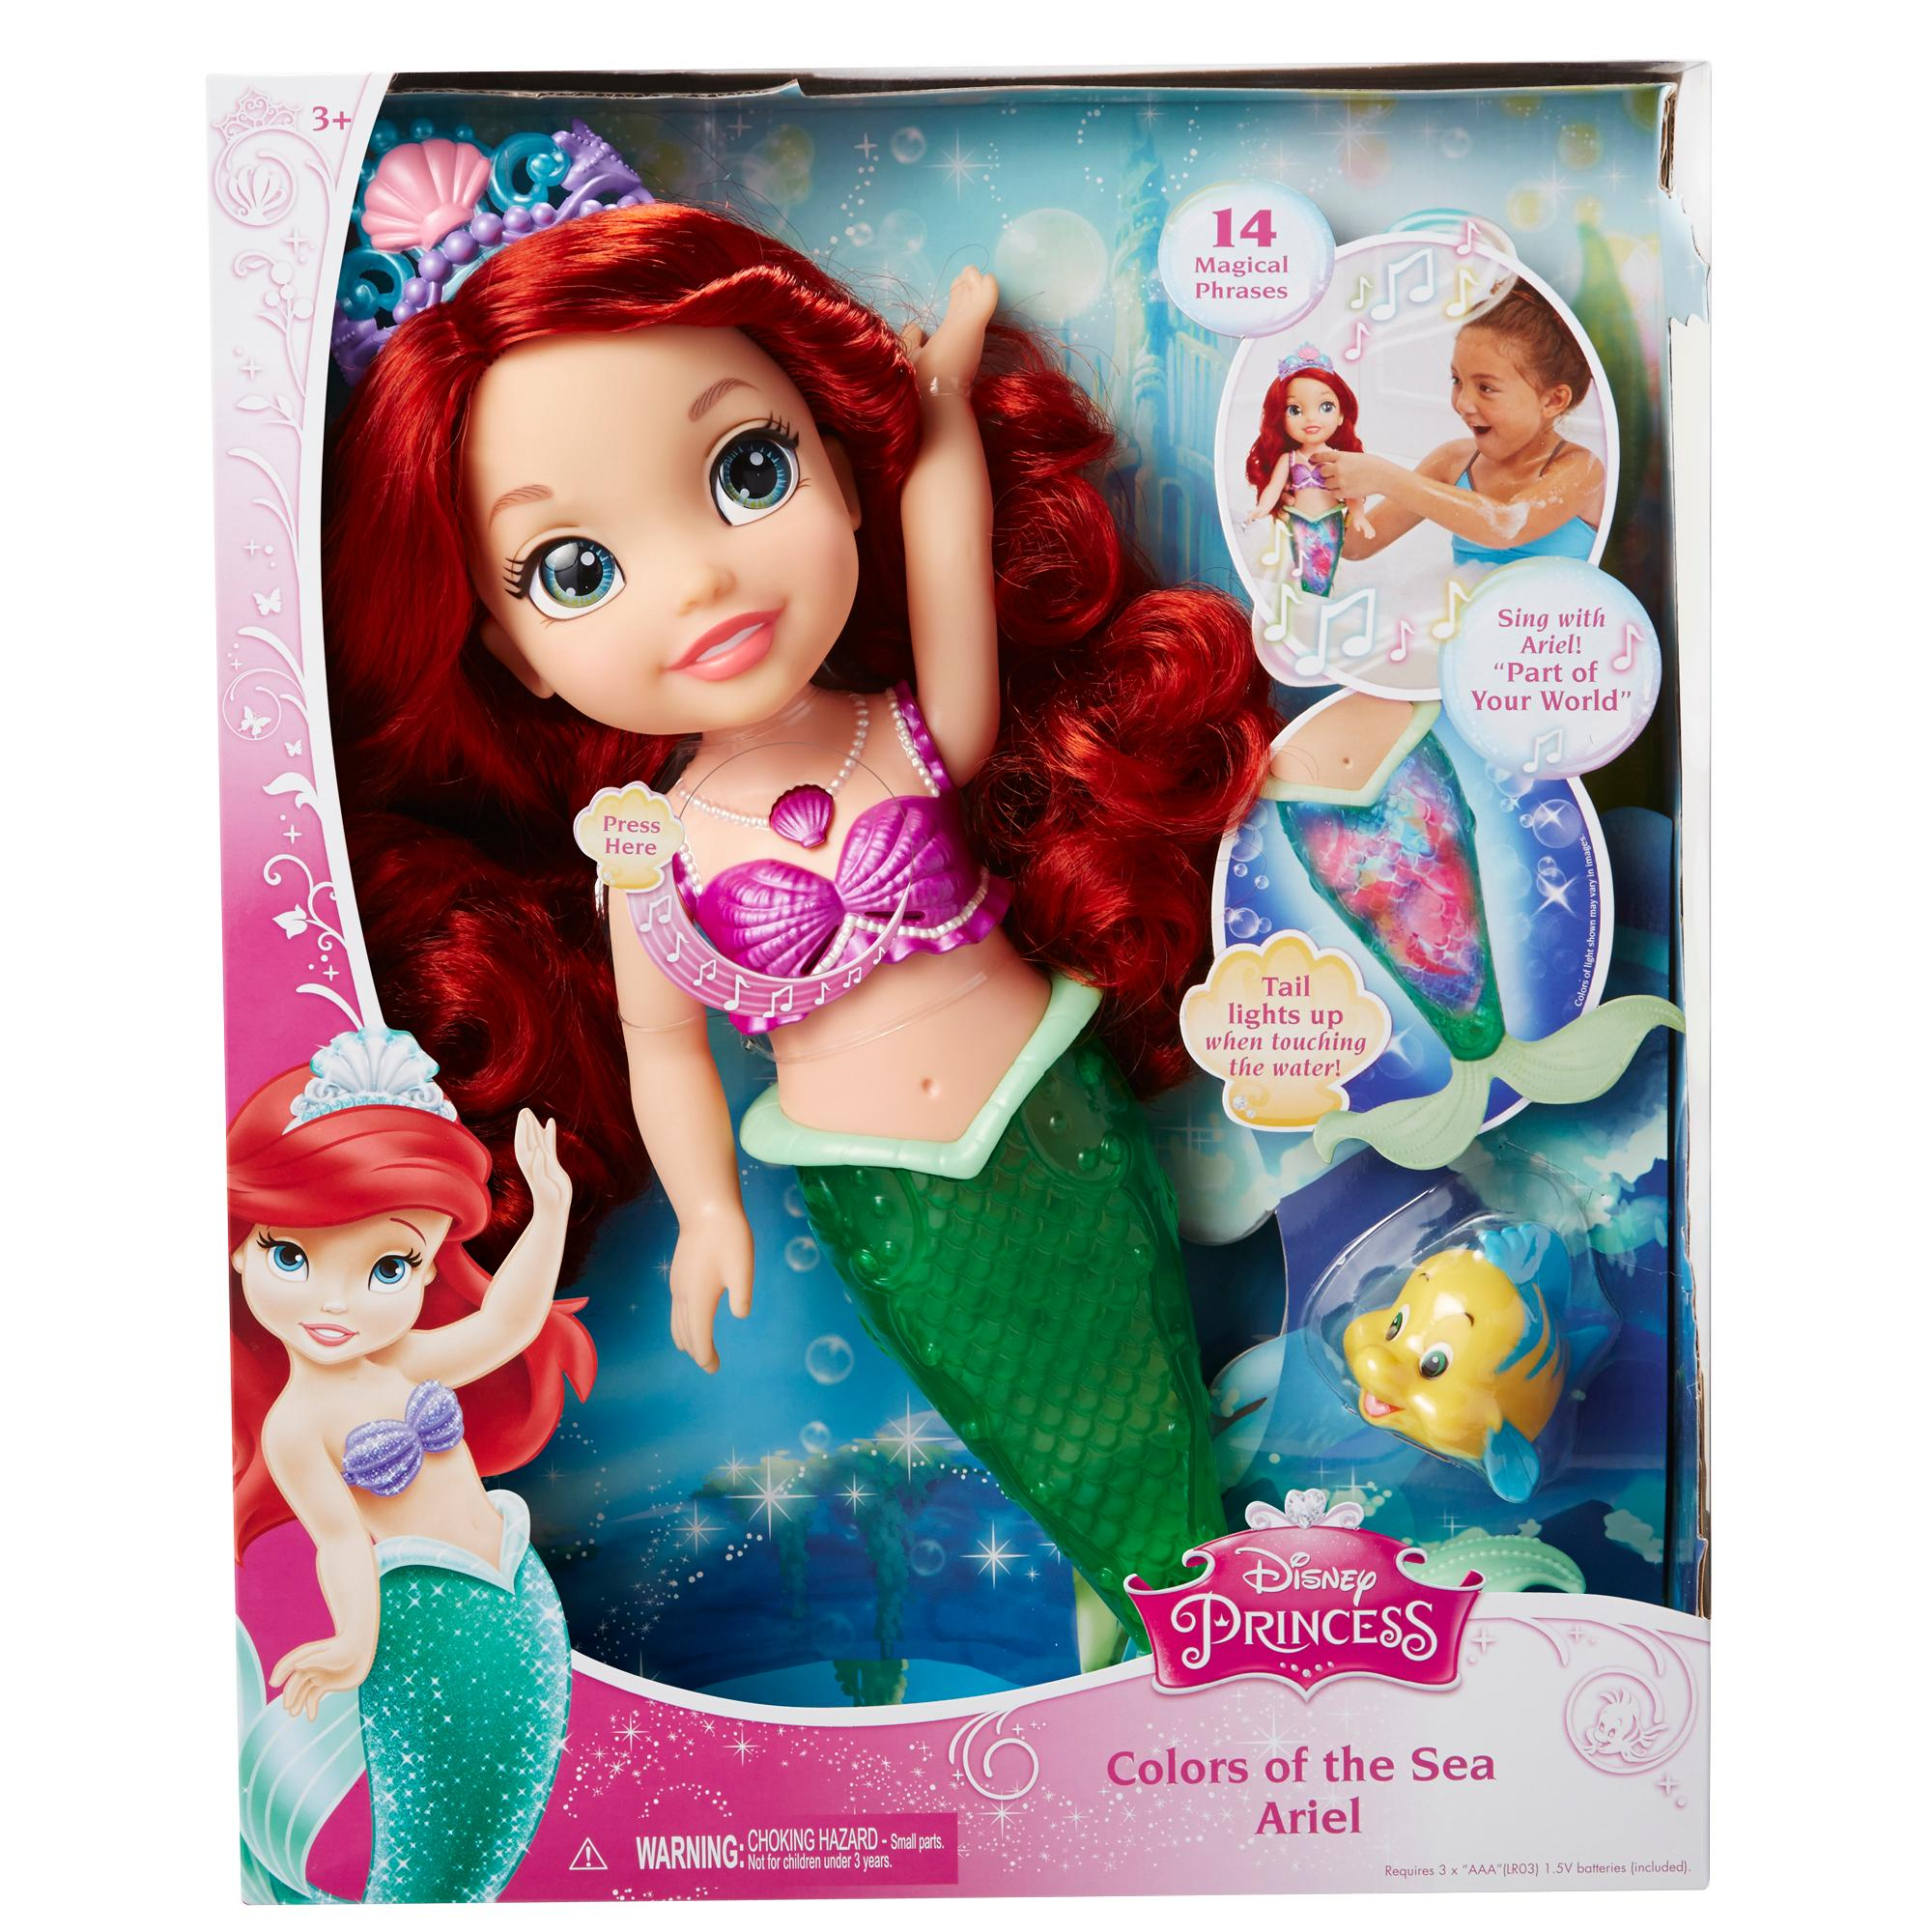 Amazon.com: Disney Princess Colors of the Sea Ariel Doll